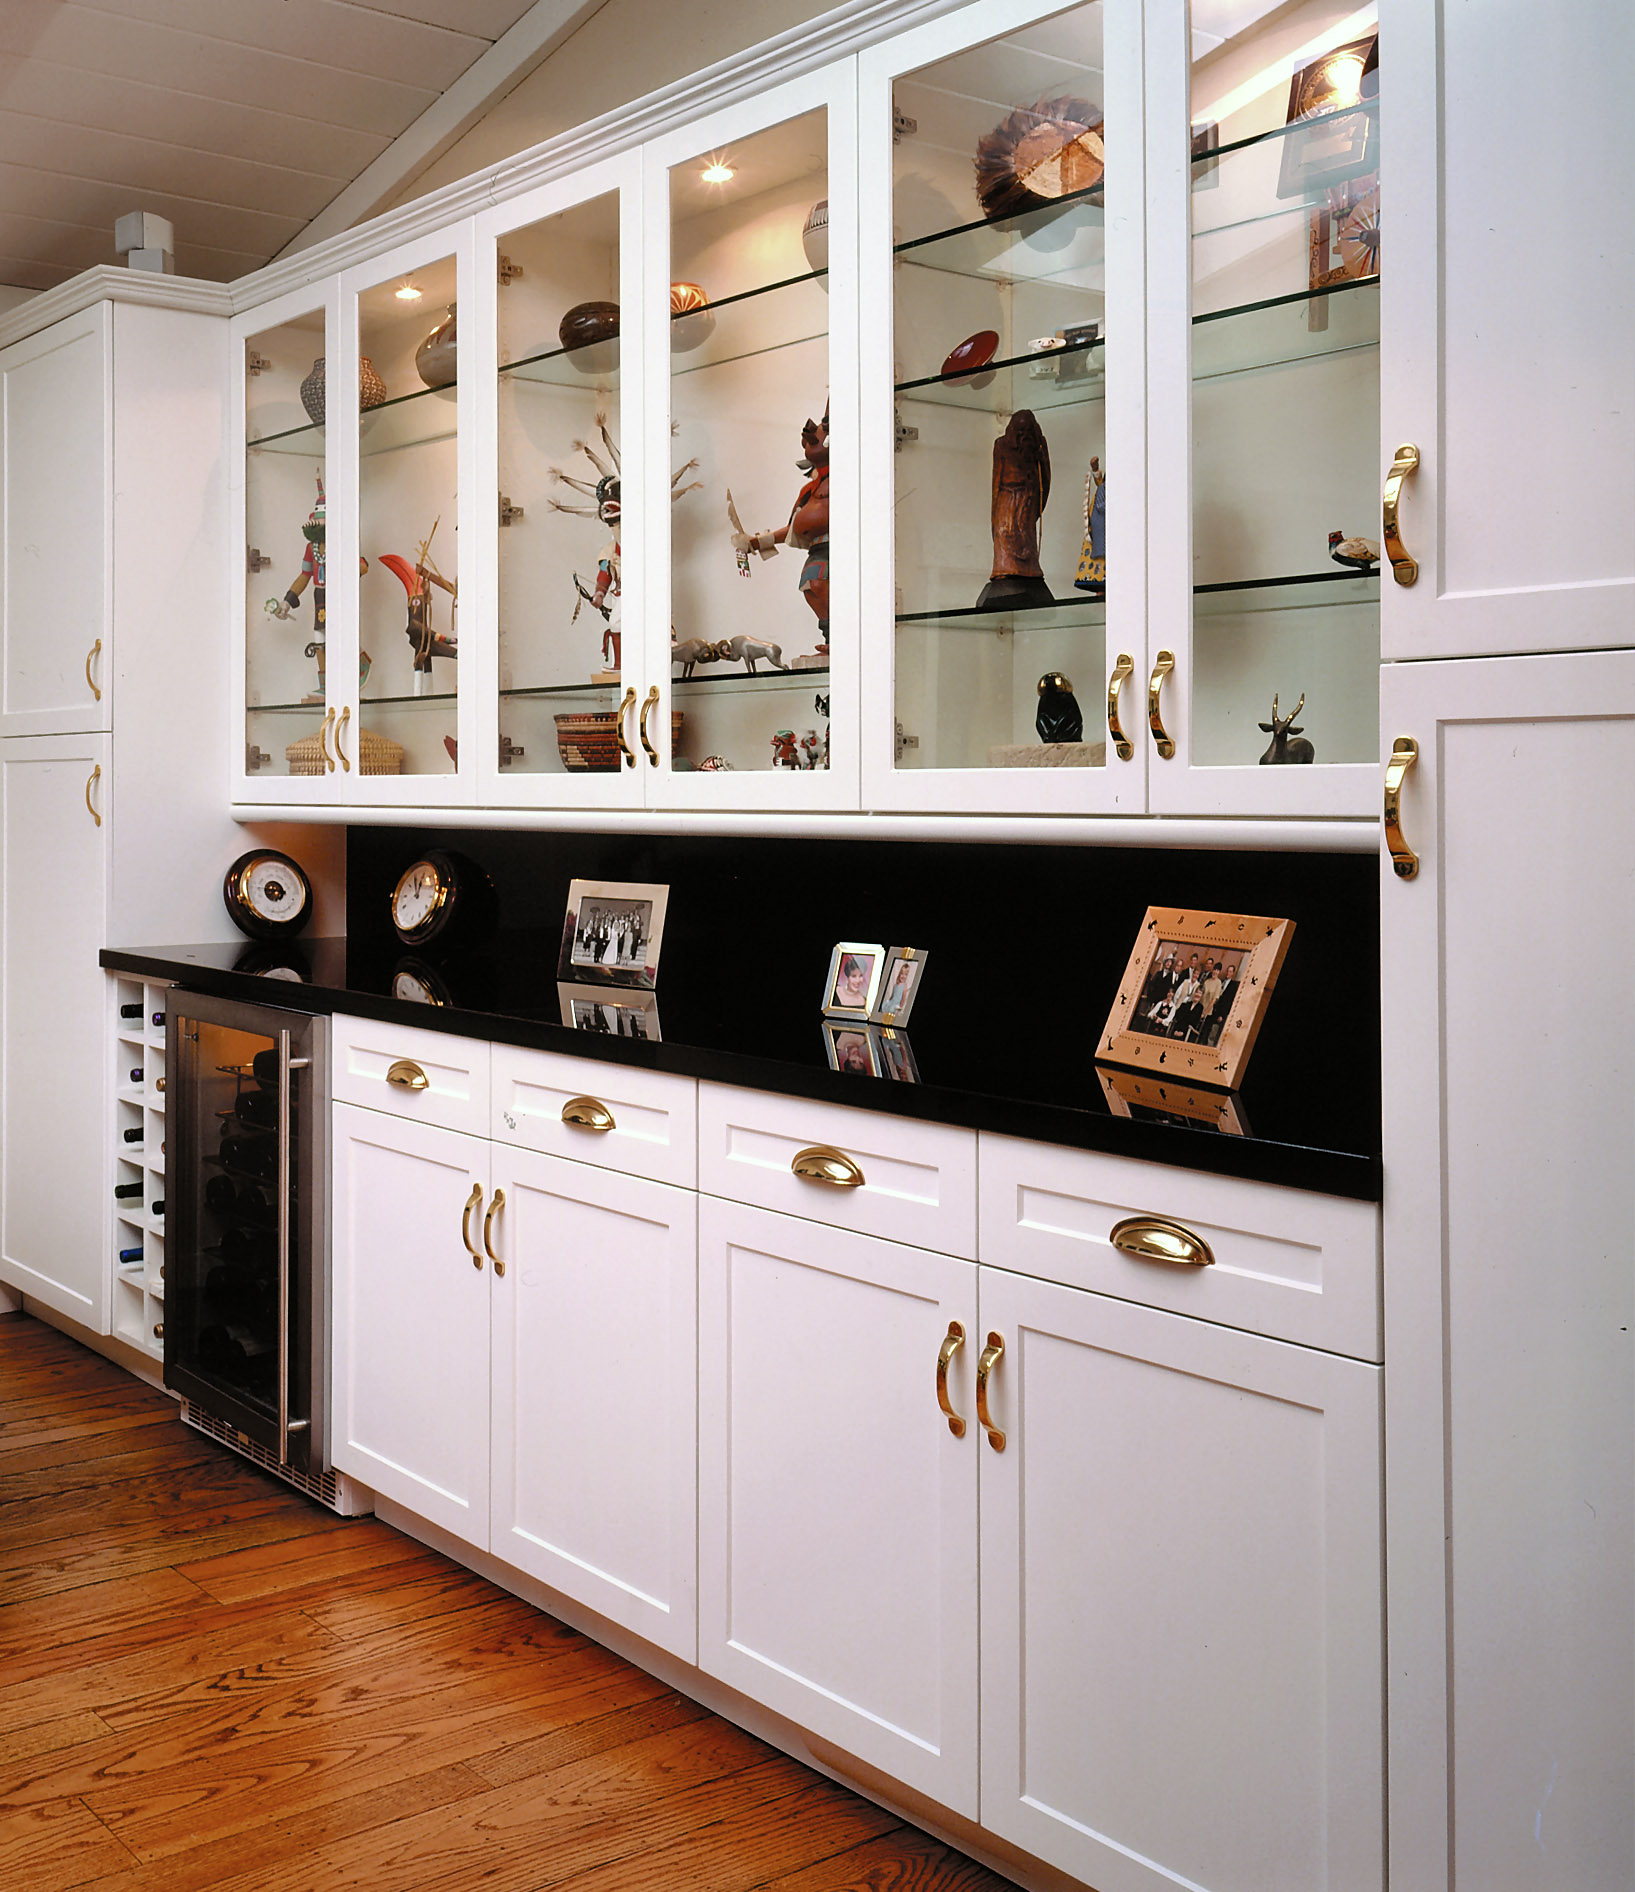 Transitional Kitchens With White Cabinets: Transitional Kitchens